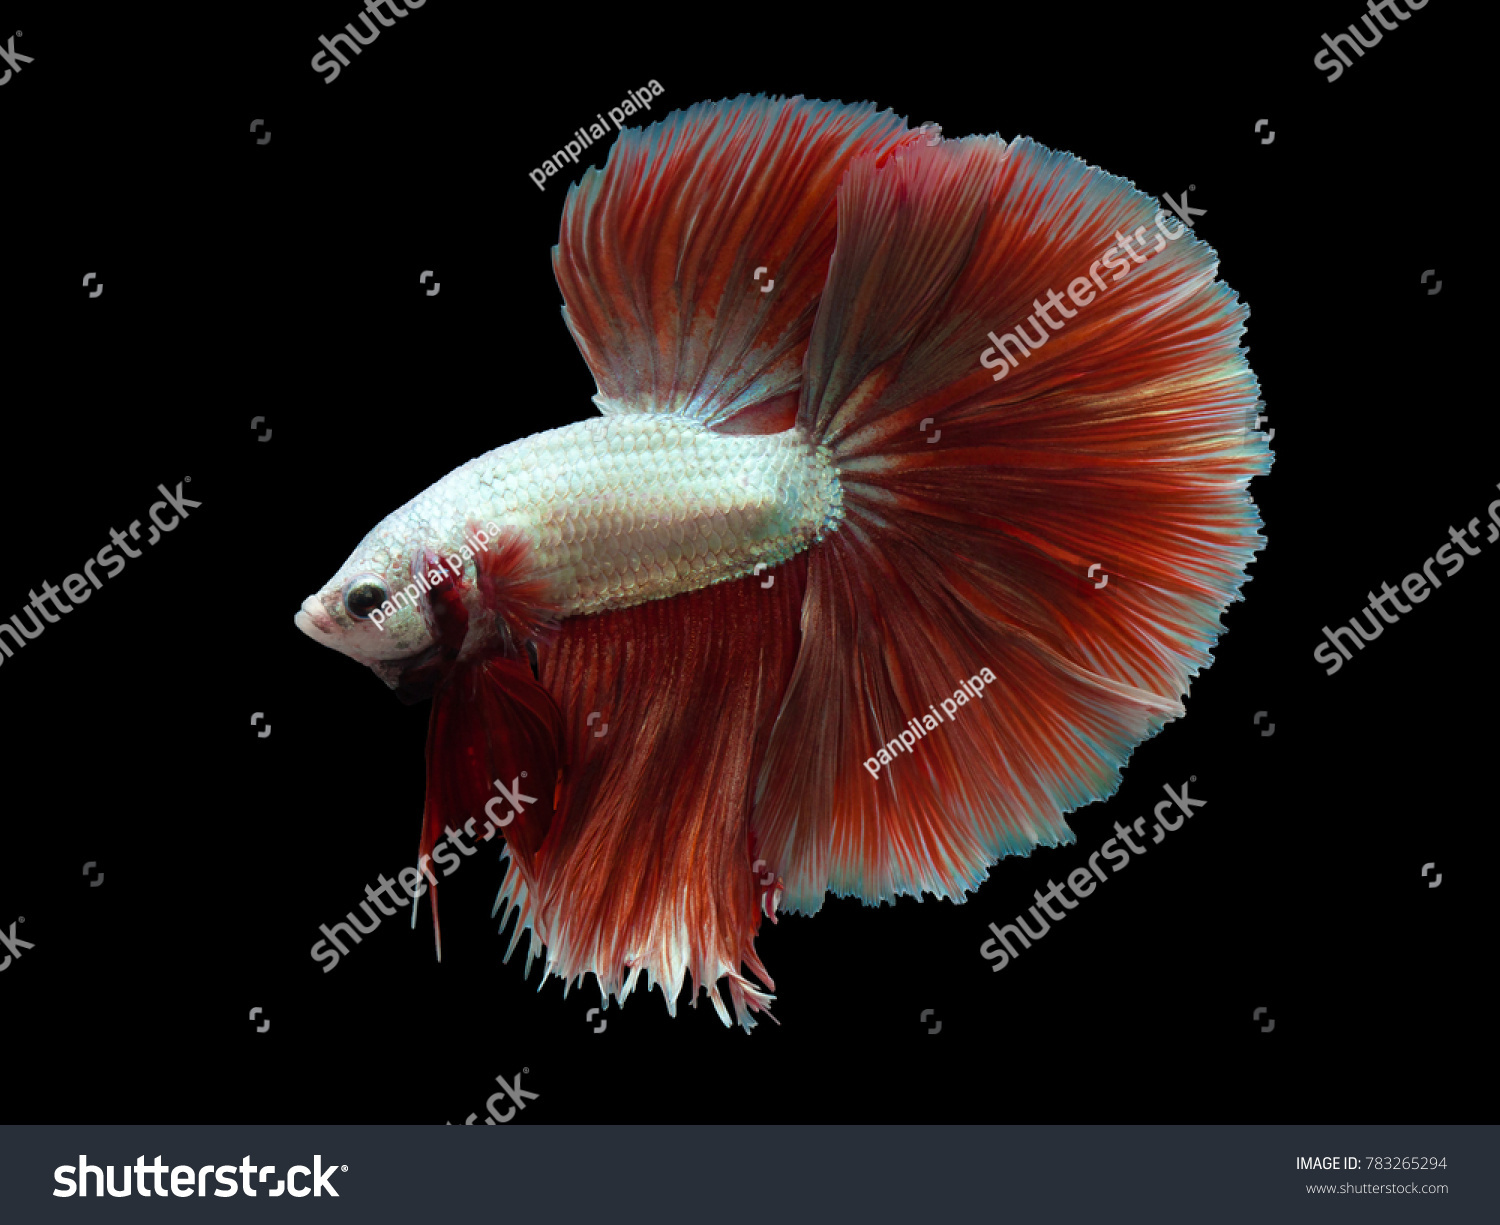 Moving moment of Red and white half moon siamese fighting fish ...